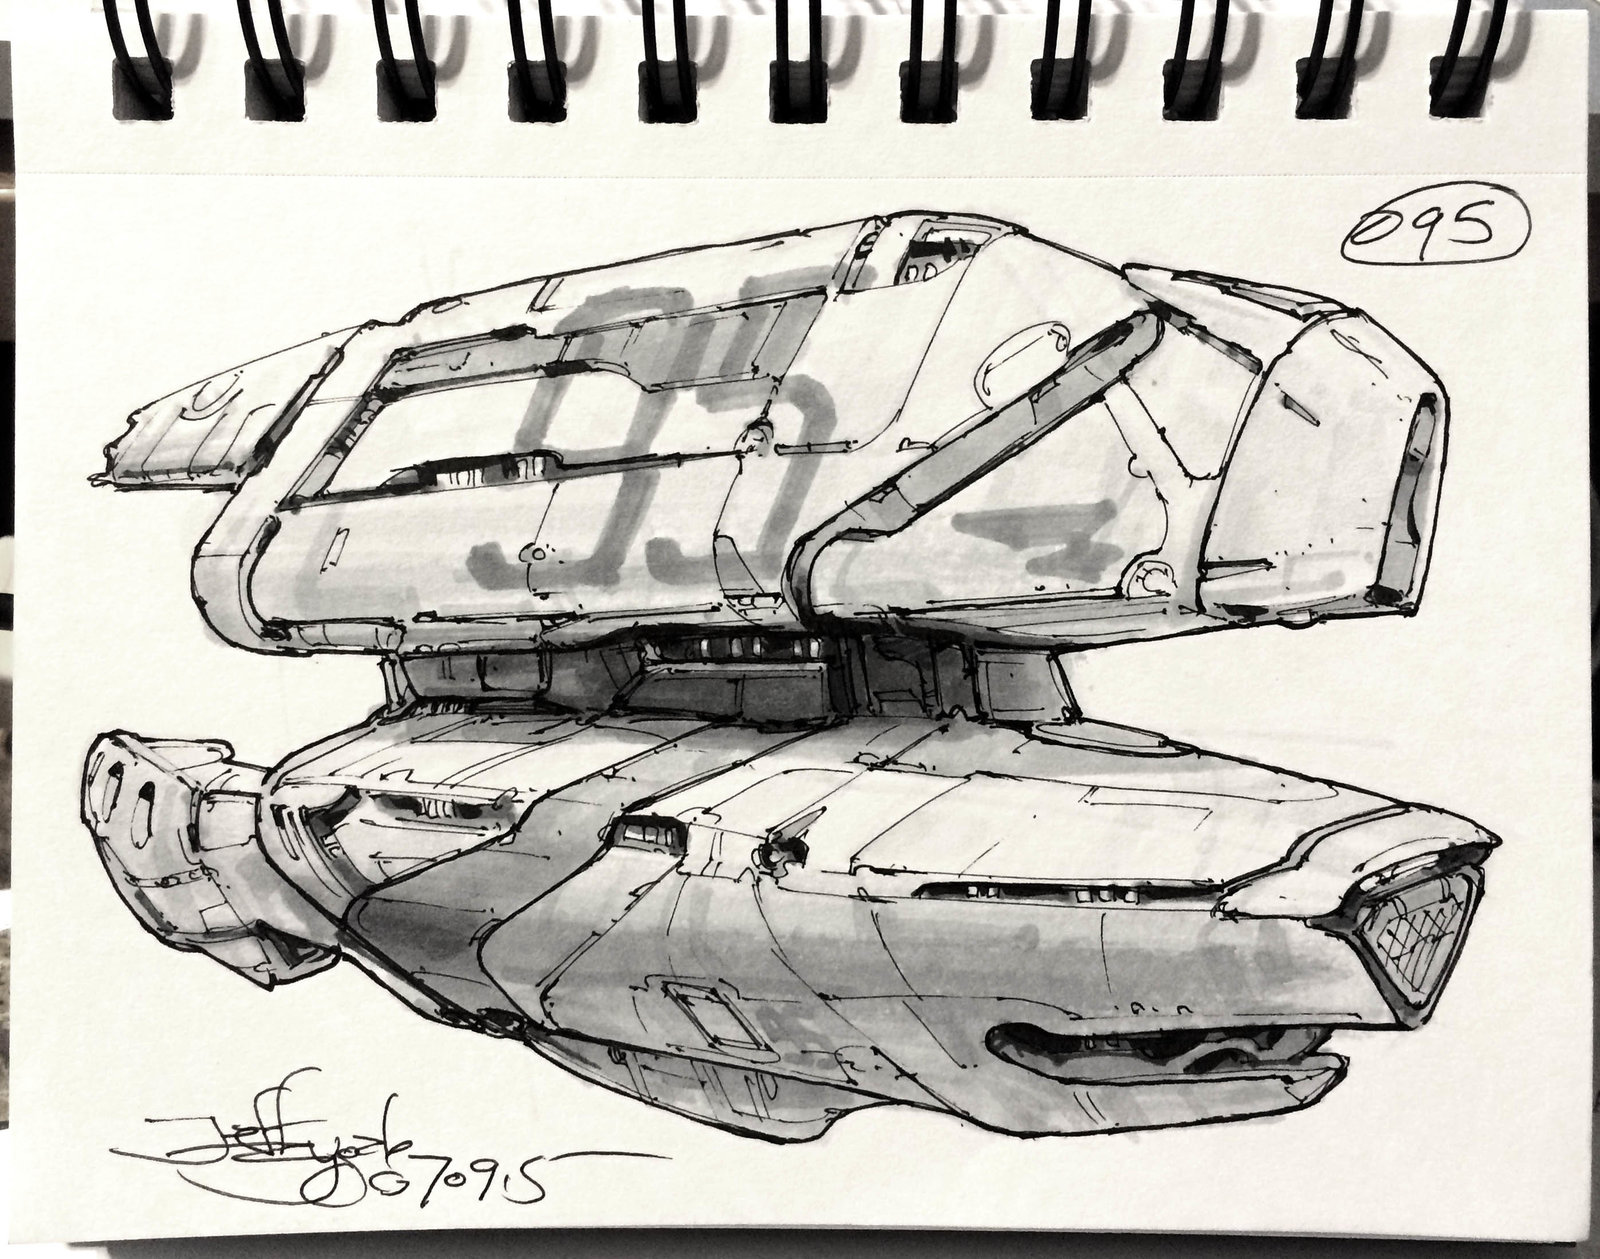 SpaceshipADay 095